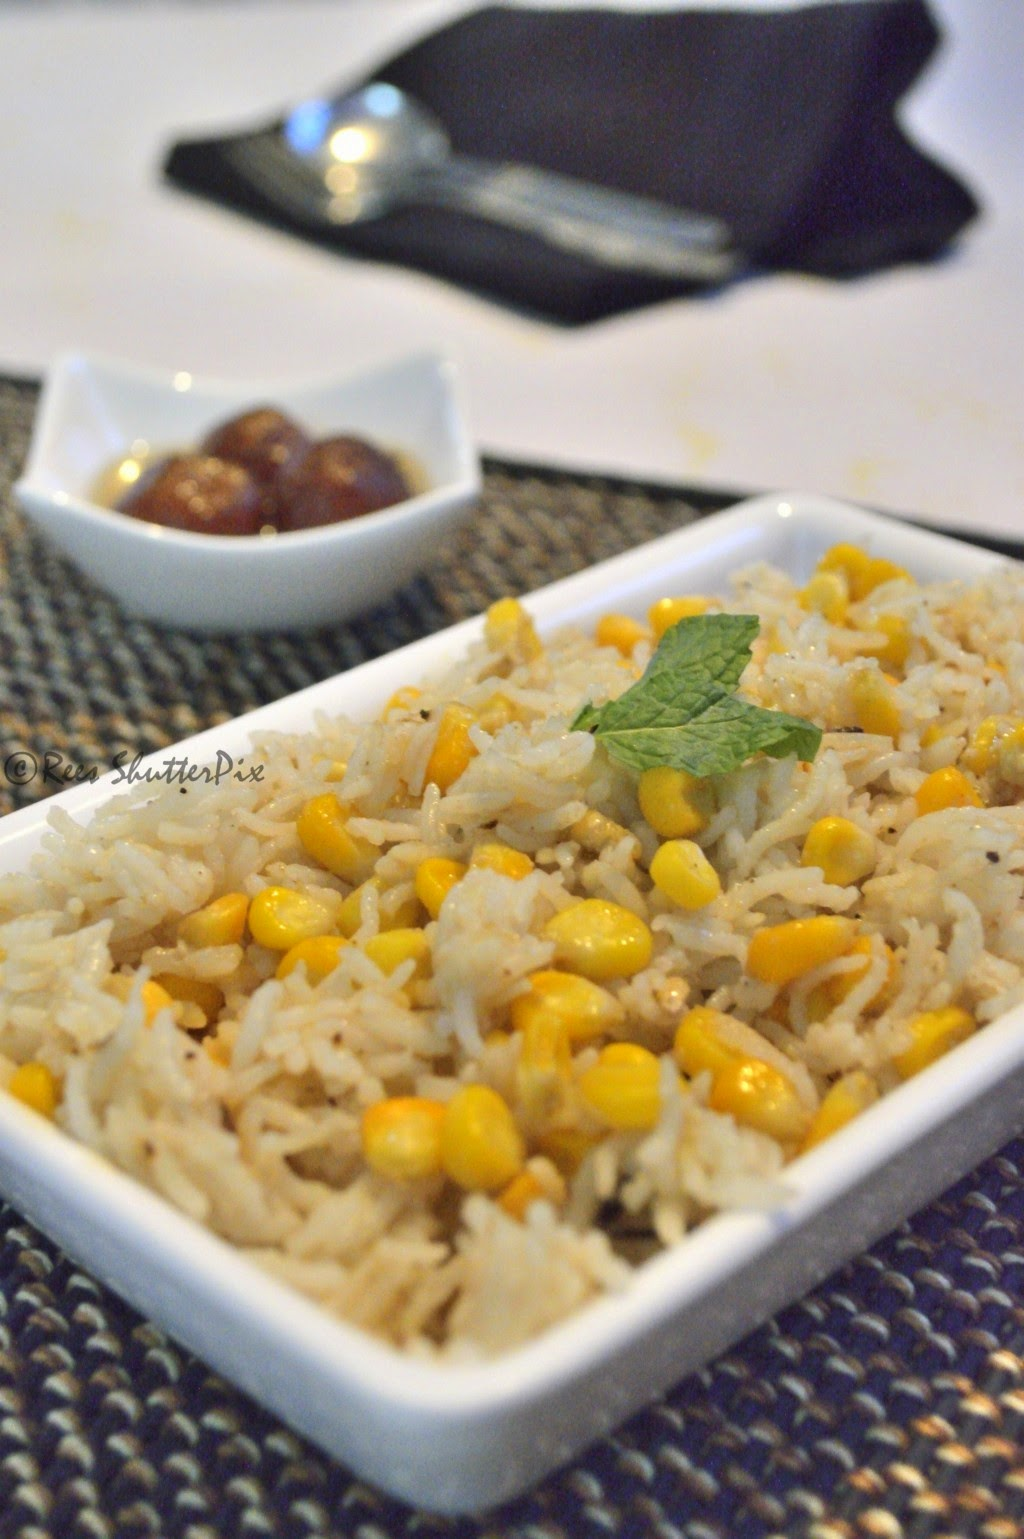 Sweet Corn Pulao Recipe, Lunch Recipes,easy one pot meal recipes, easy sweet corn rice recipe, easy sweet corn pulao recipe, pulao recipes, restaurant style sweet corn pulao, sweet corn pulao using coconut milk, chettinad style sweet corn pulao recipe, easy recipes for lunch, lunch box ideas